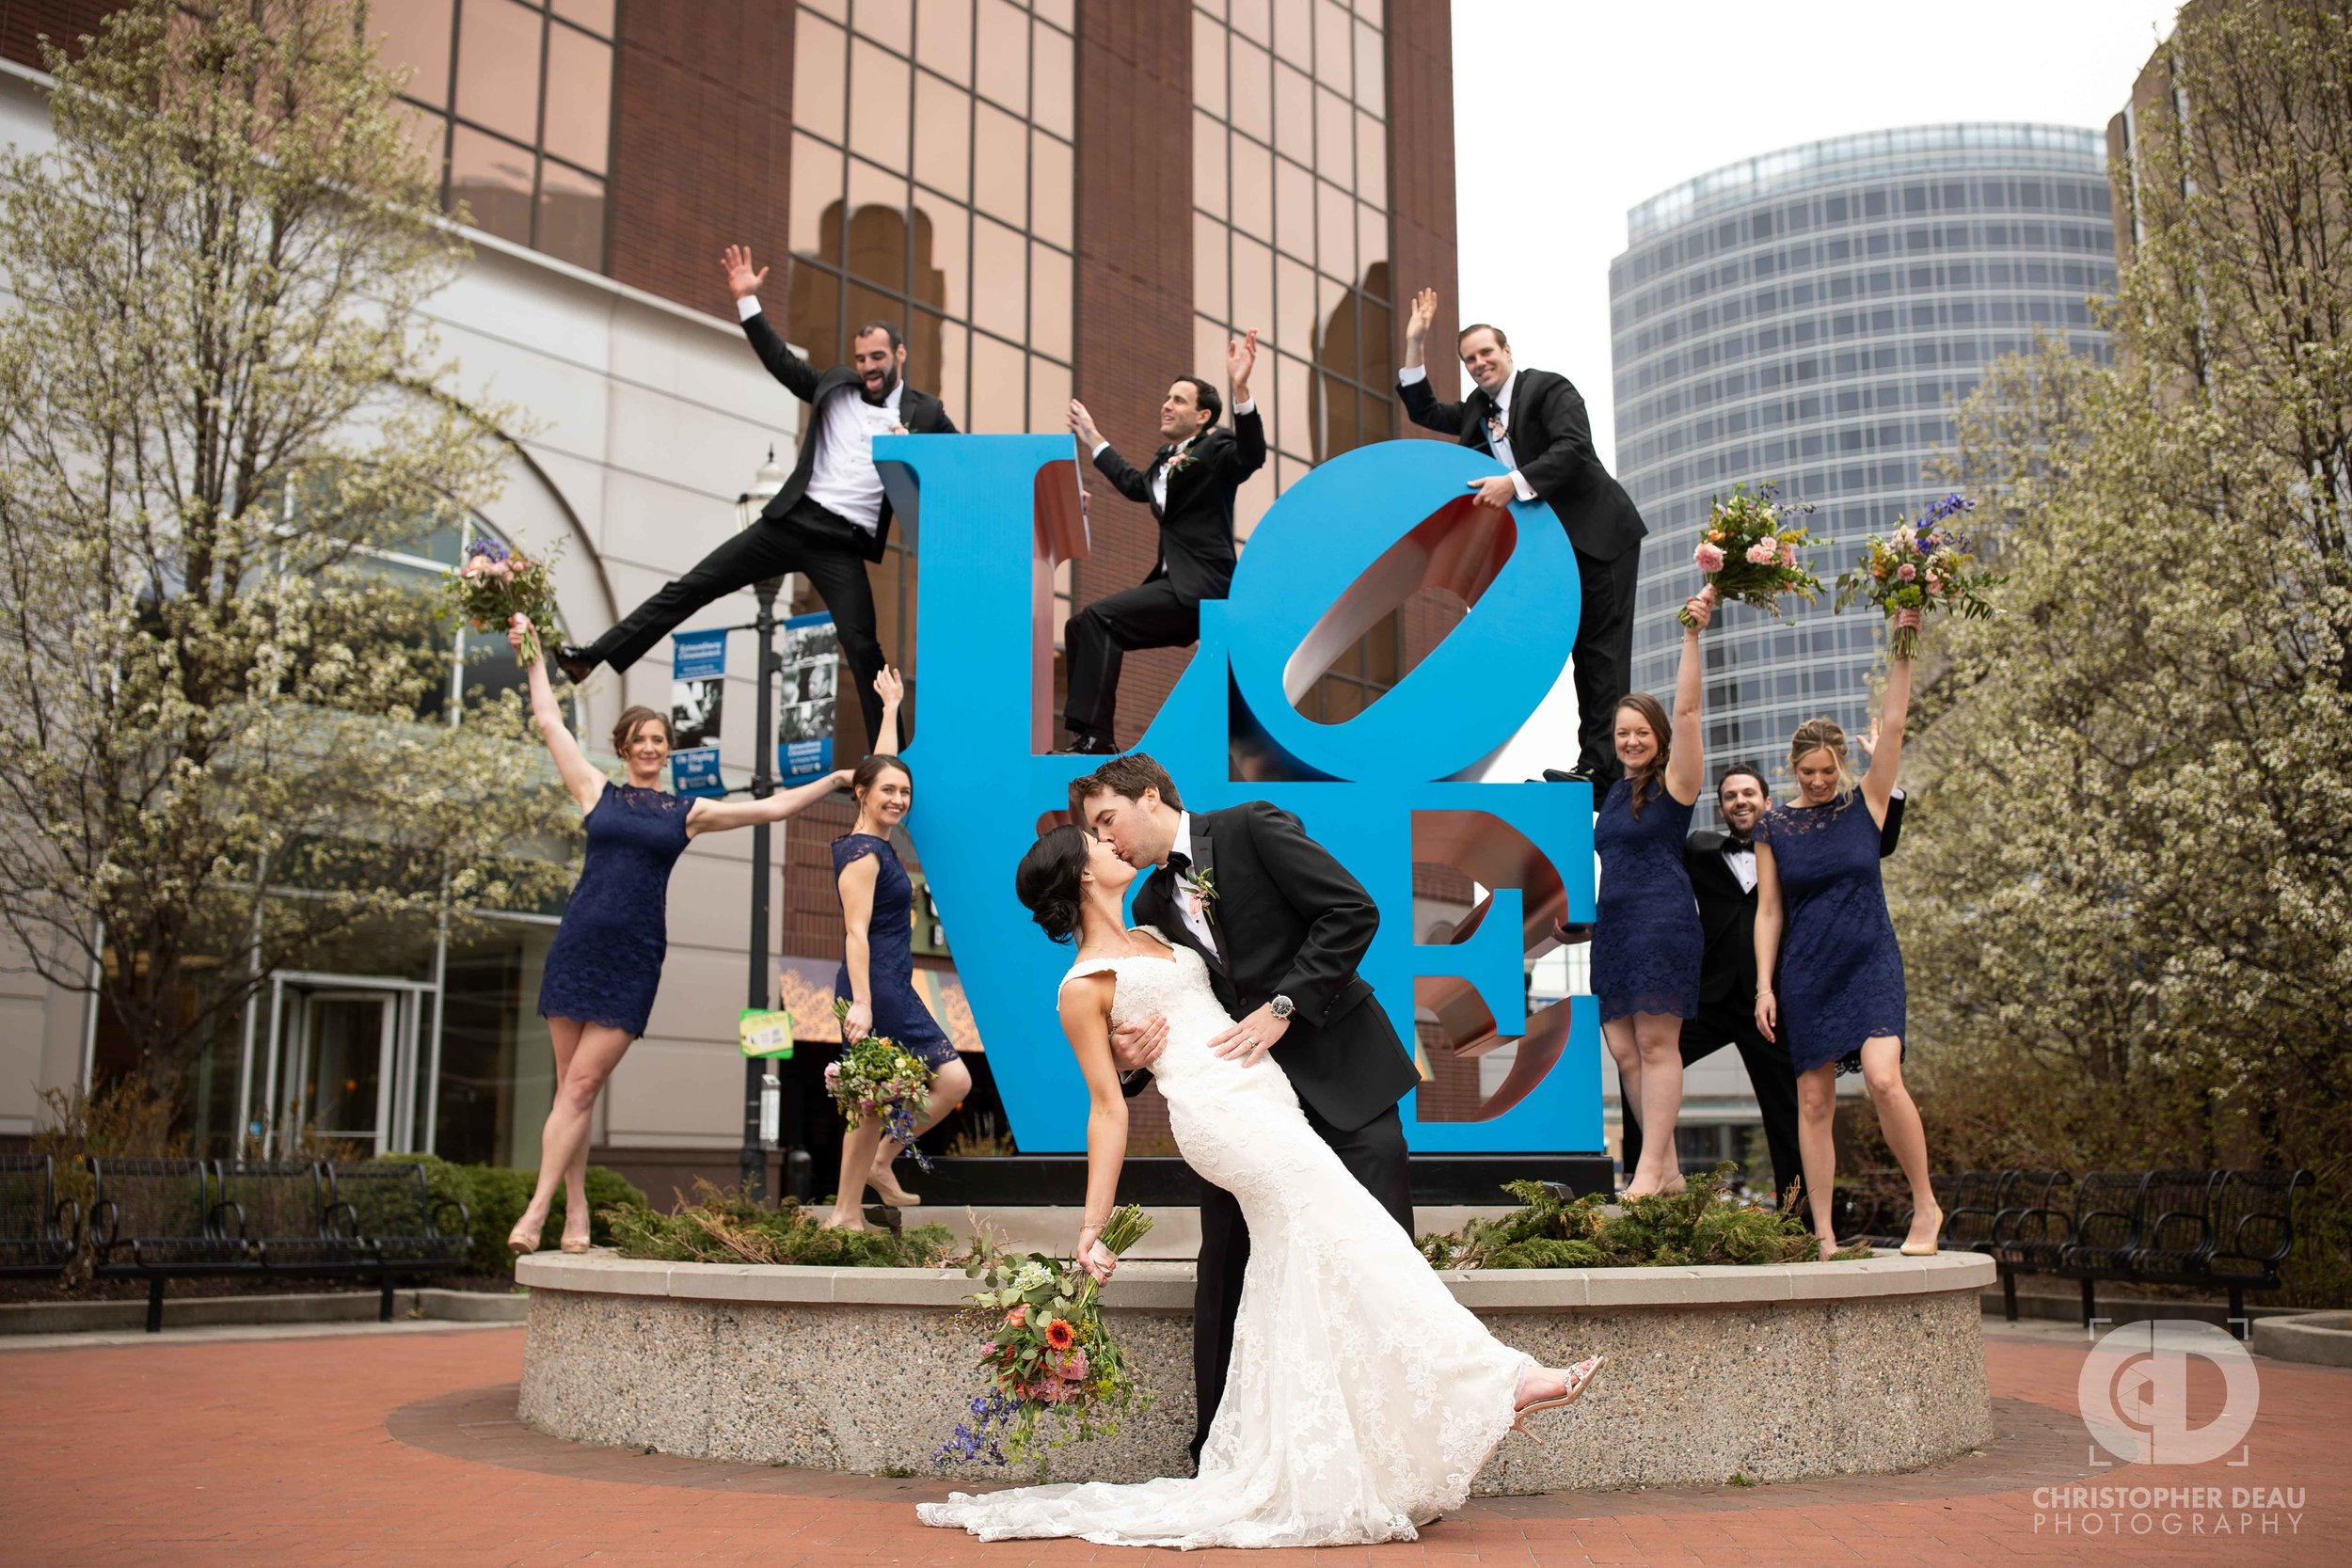 The wedding party at the love sculpture in Grand Rapids, Michigan